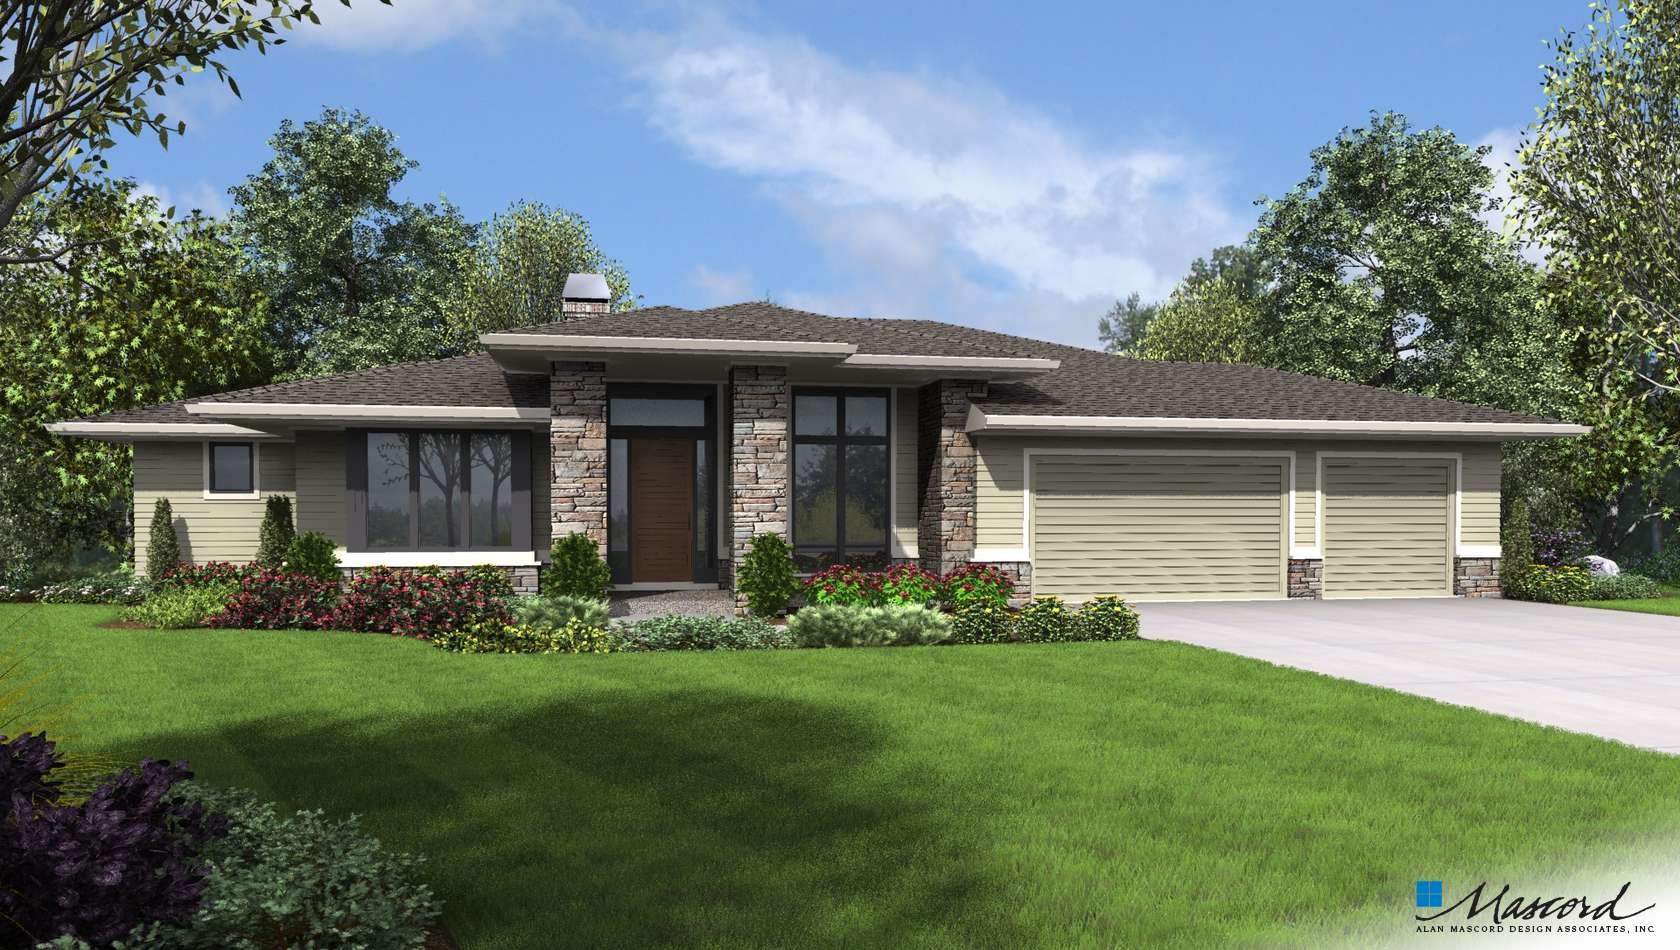 Main image for house plan 1346: The Trenton